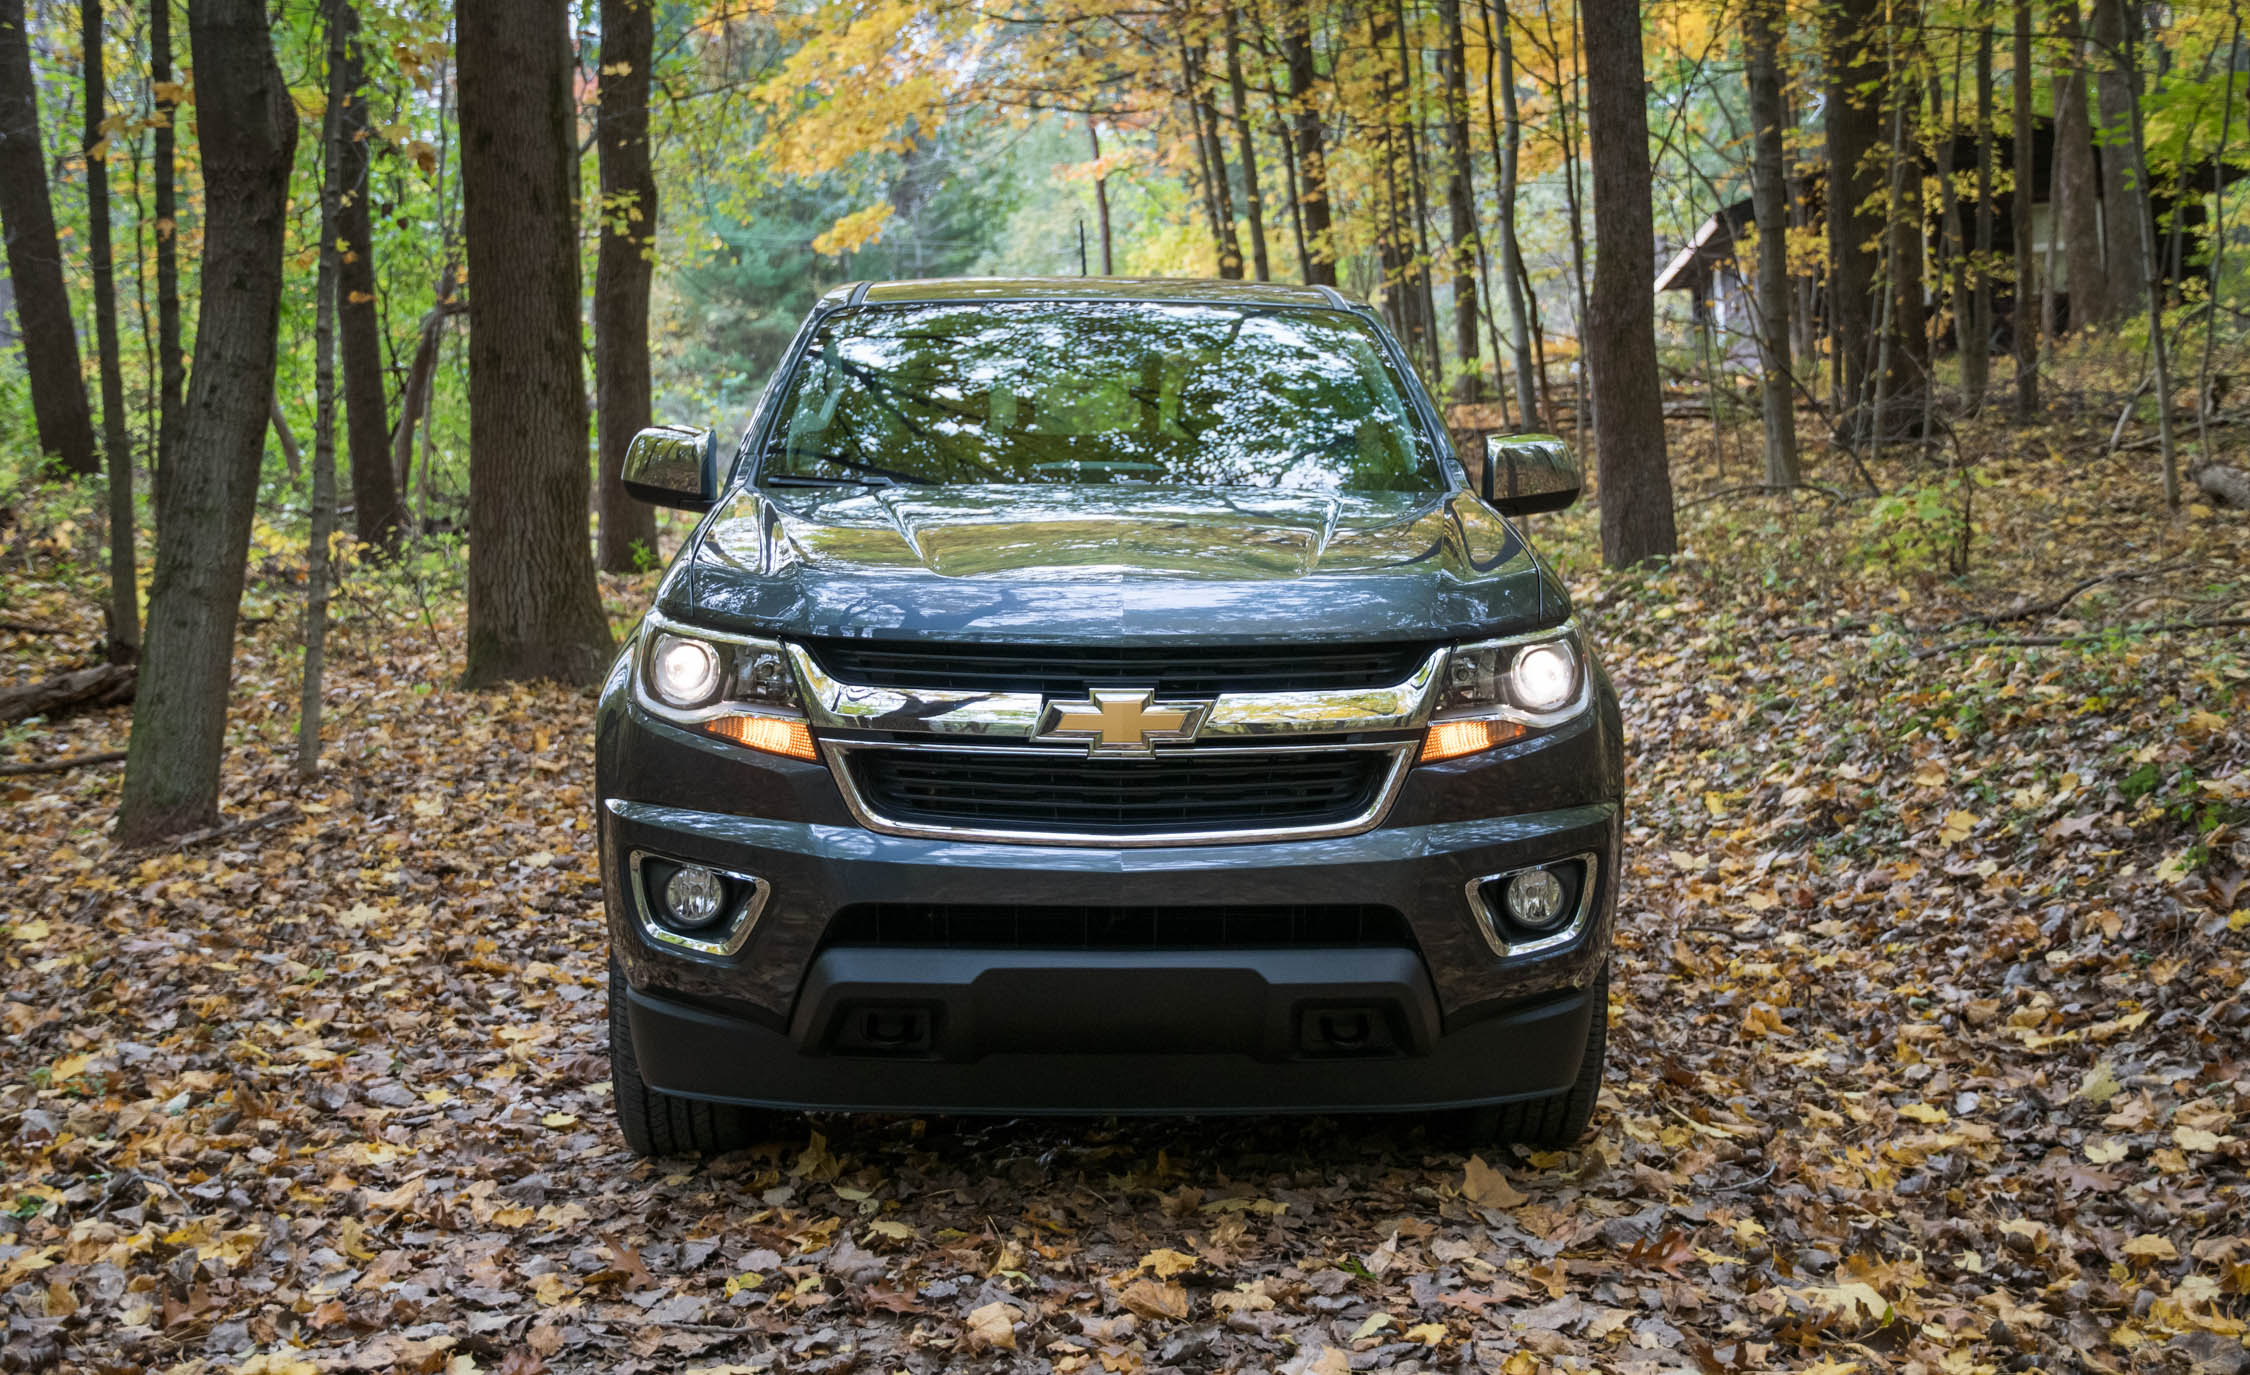 2017 Chevrolet Colorado Exterior Front End (View 41 of 41)